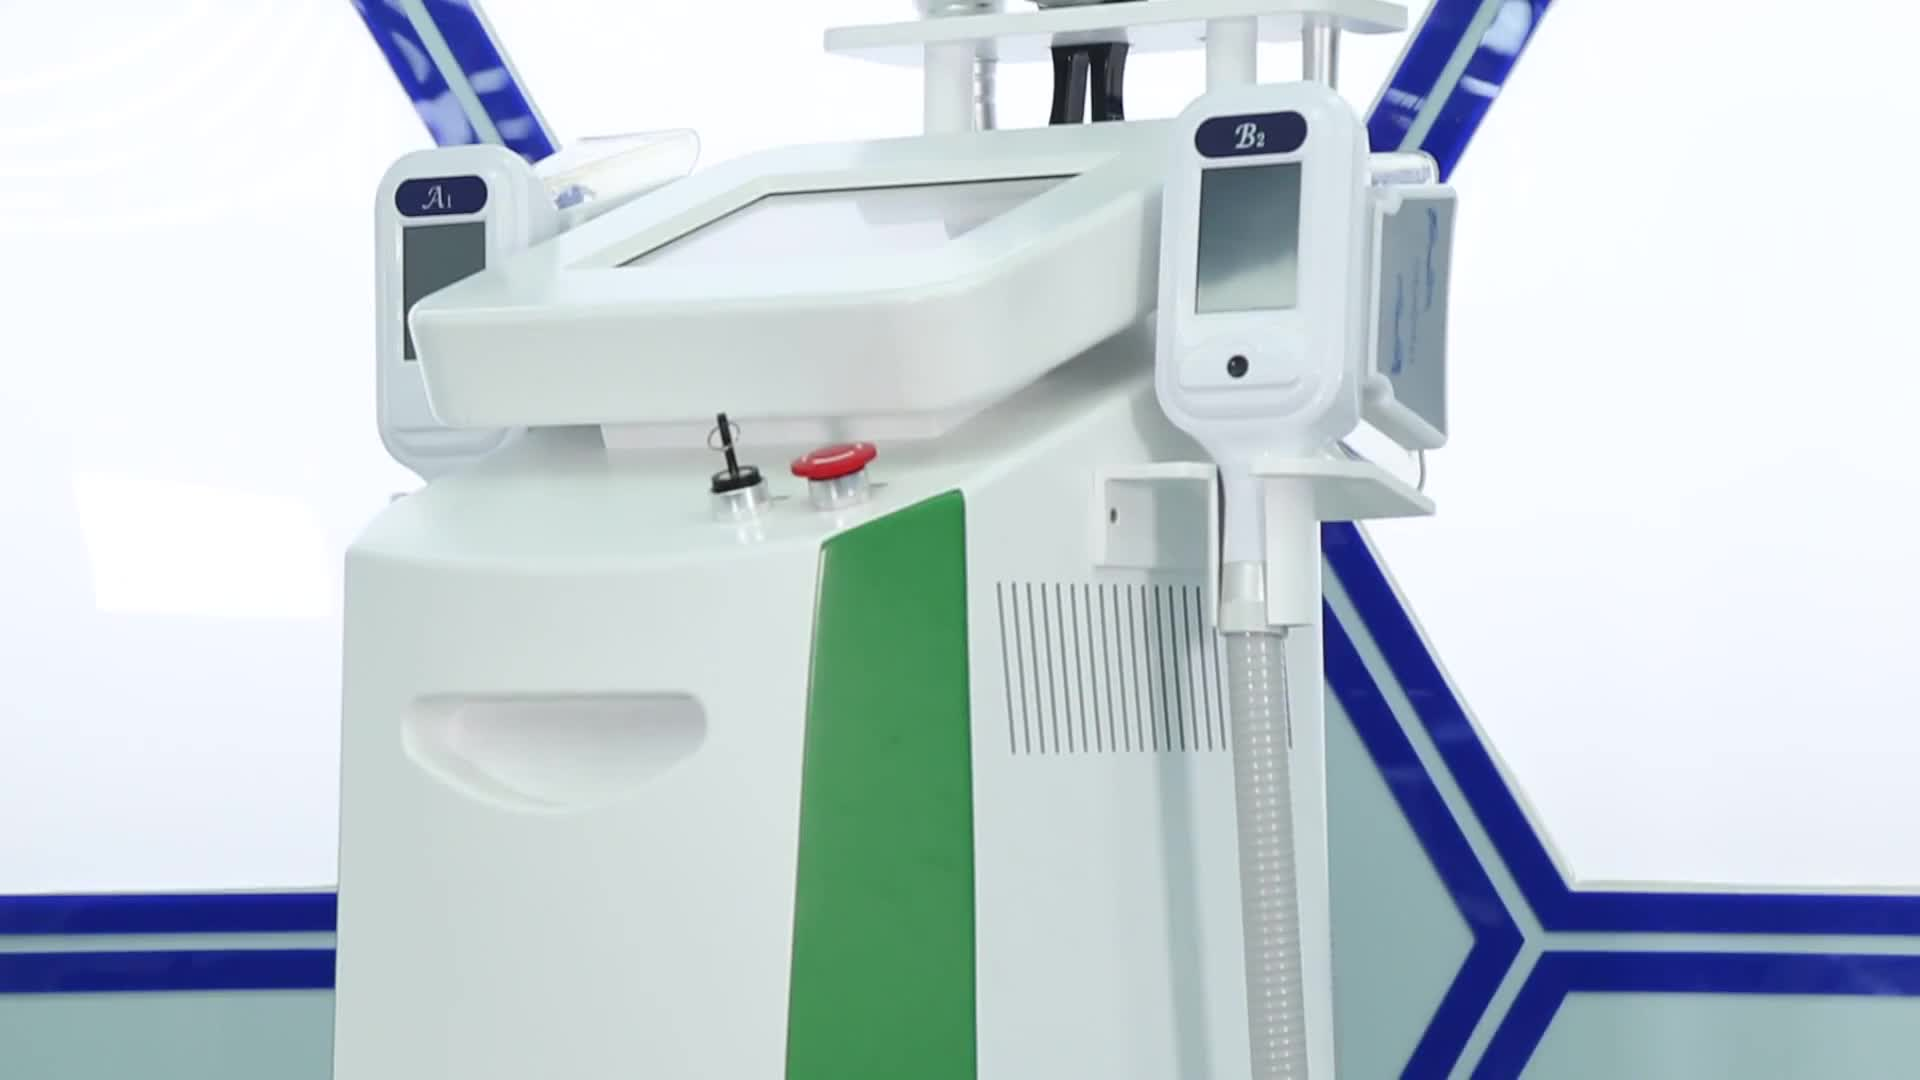 Professional NBW-C325 cool technology body slimming weight loss cryolipolysis machine